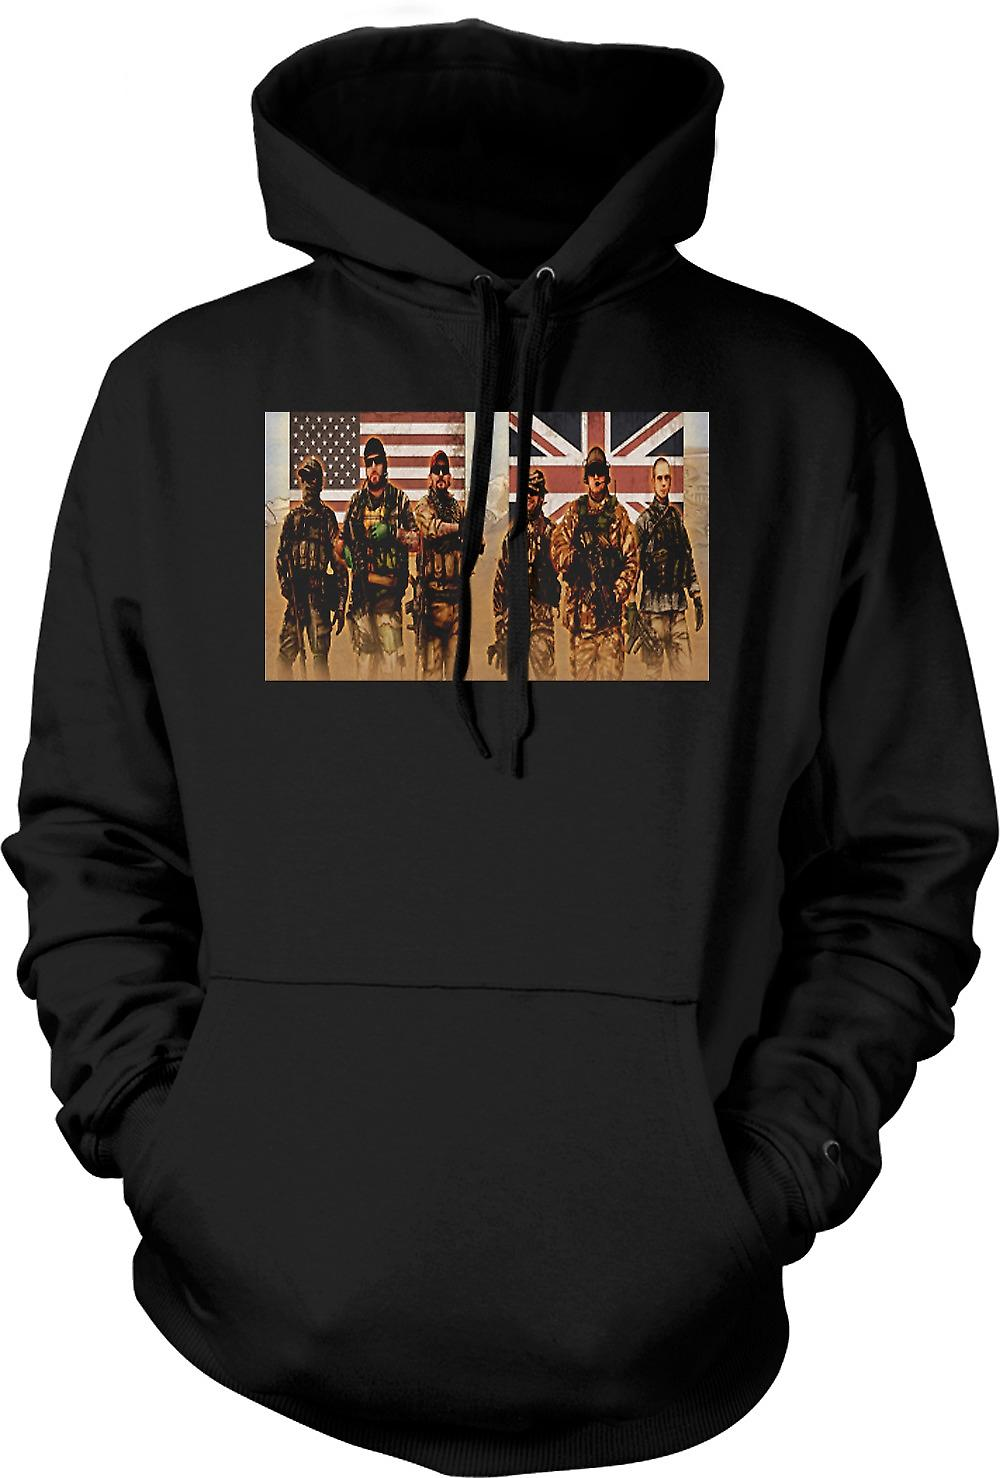 Mens Hoodie - VS en UK Special Forces. SAS en Delta